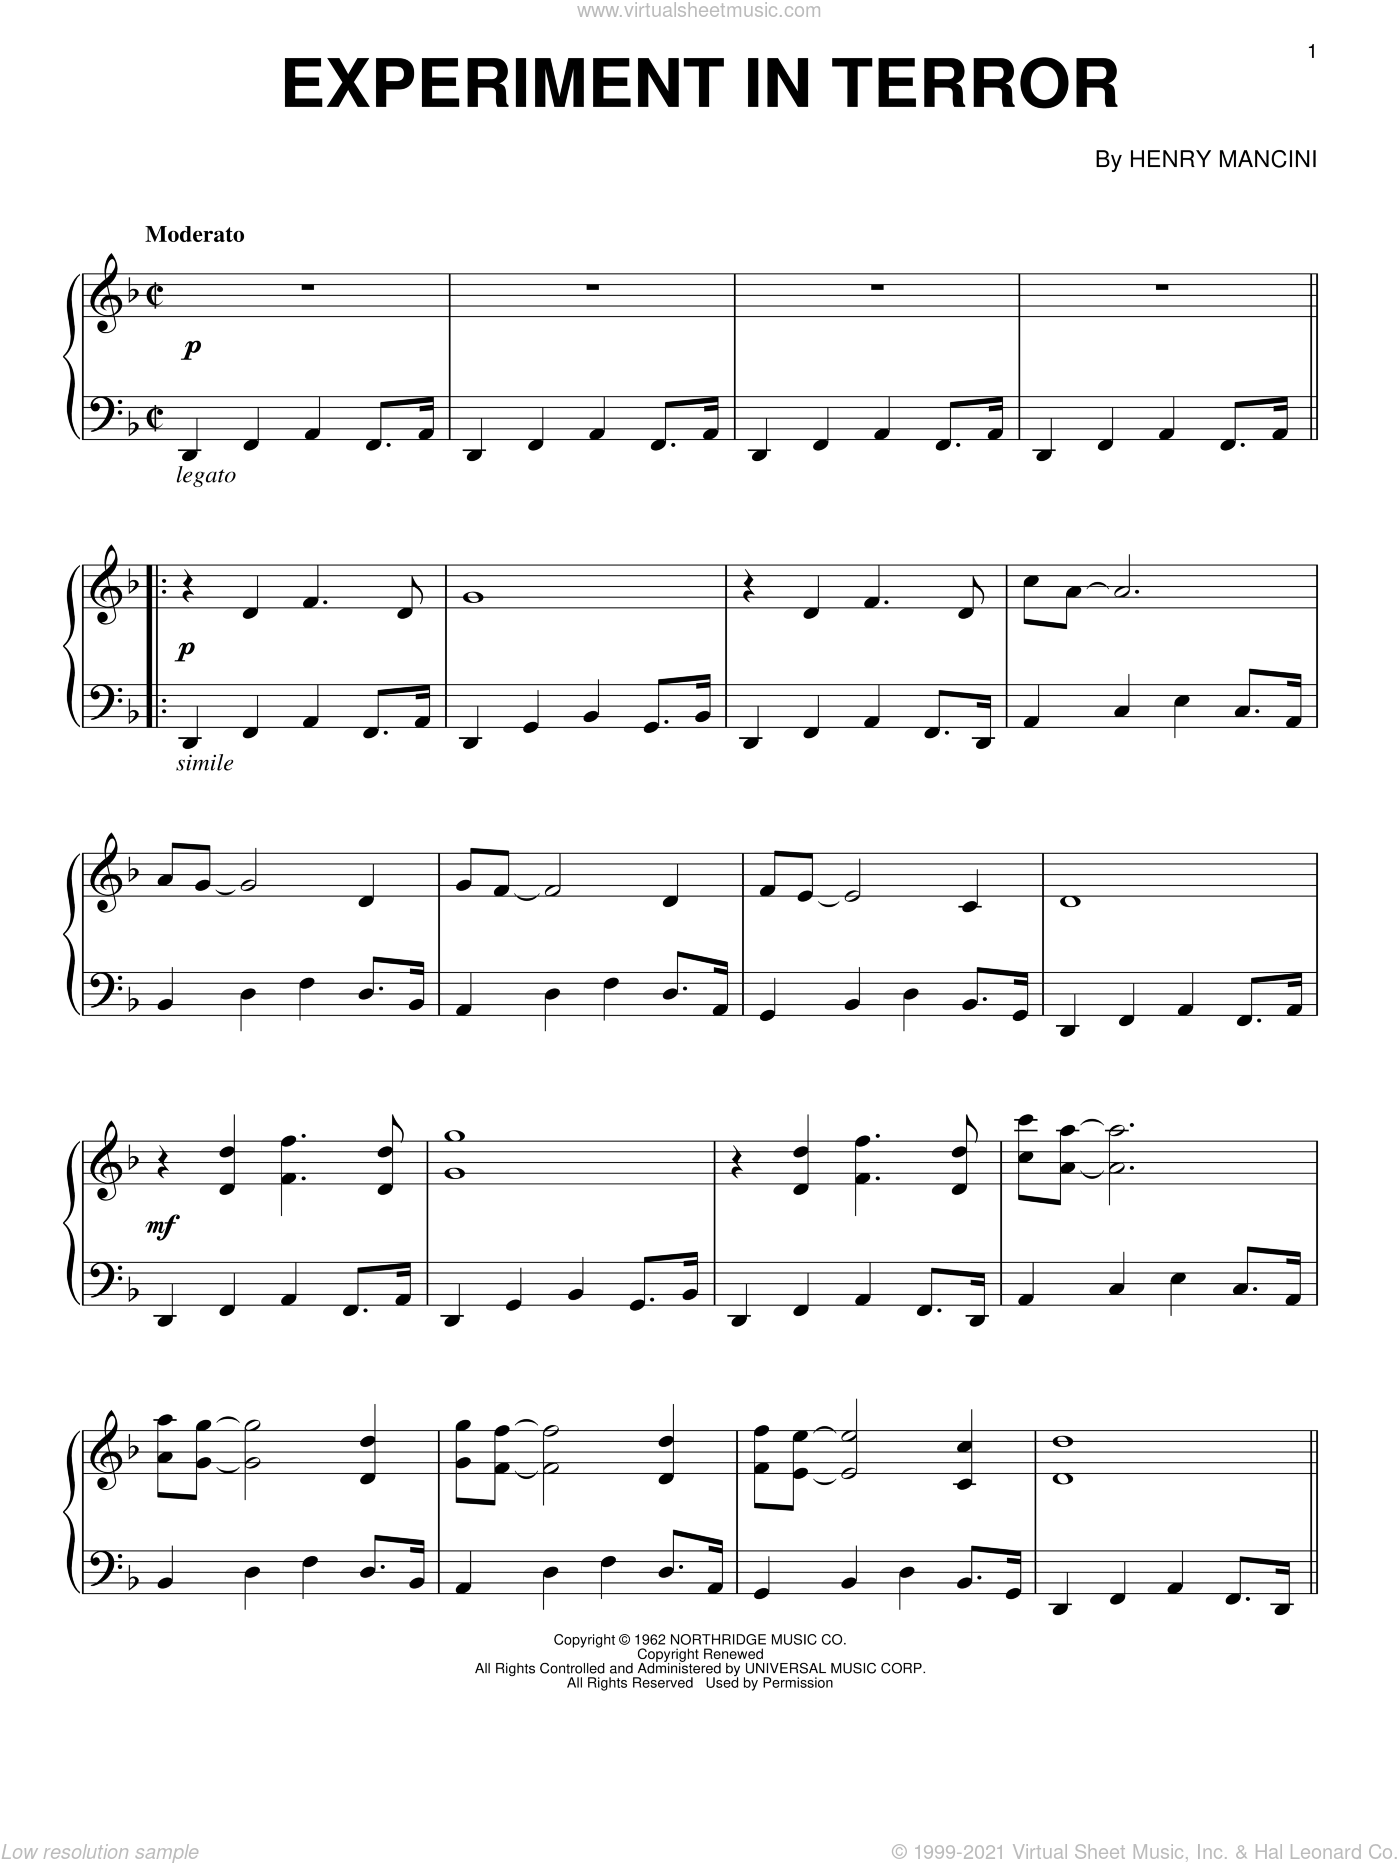 Experiment In Terror sheet music for piano solo by Henry Mancini. Score Image Preview.